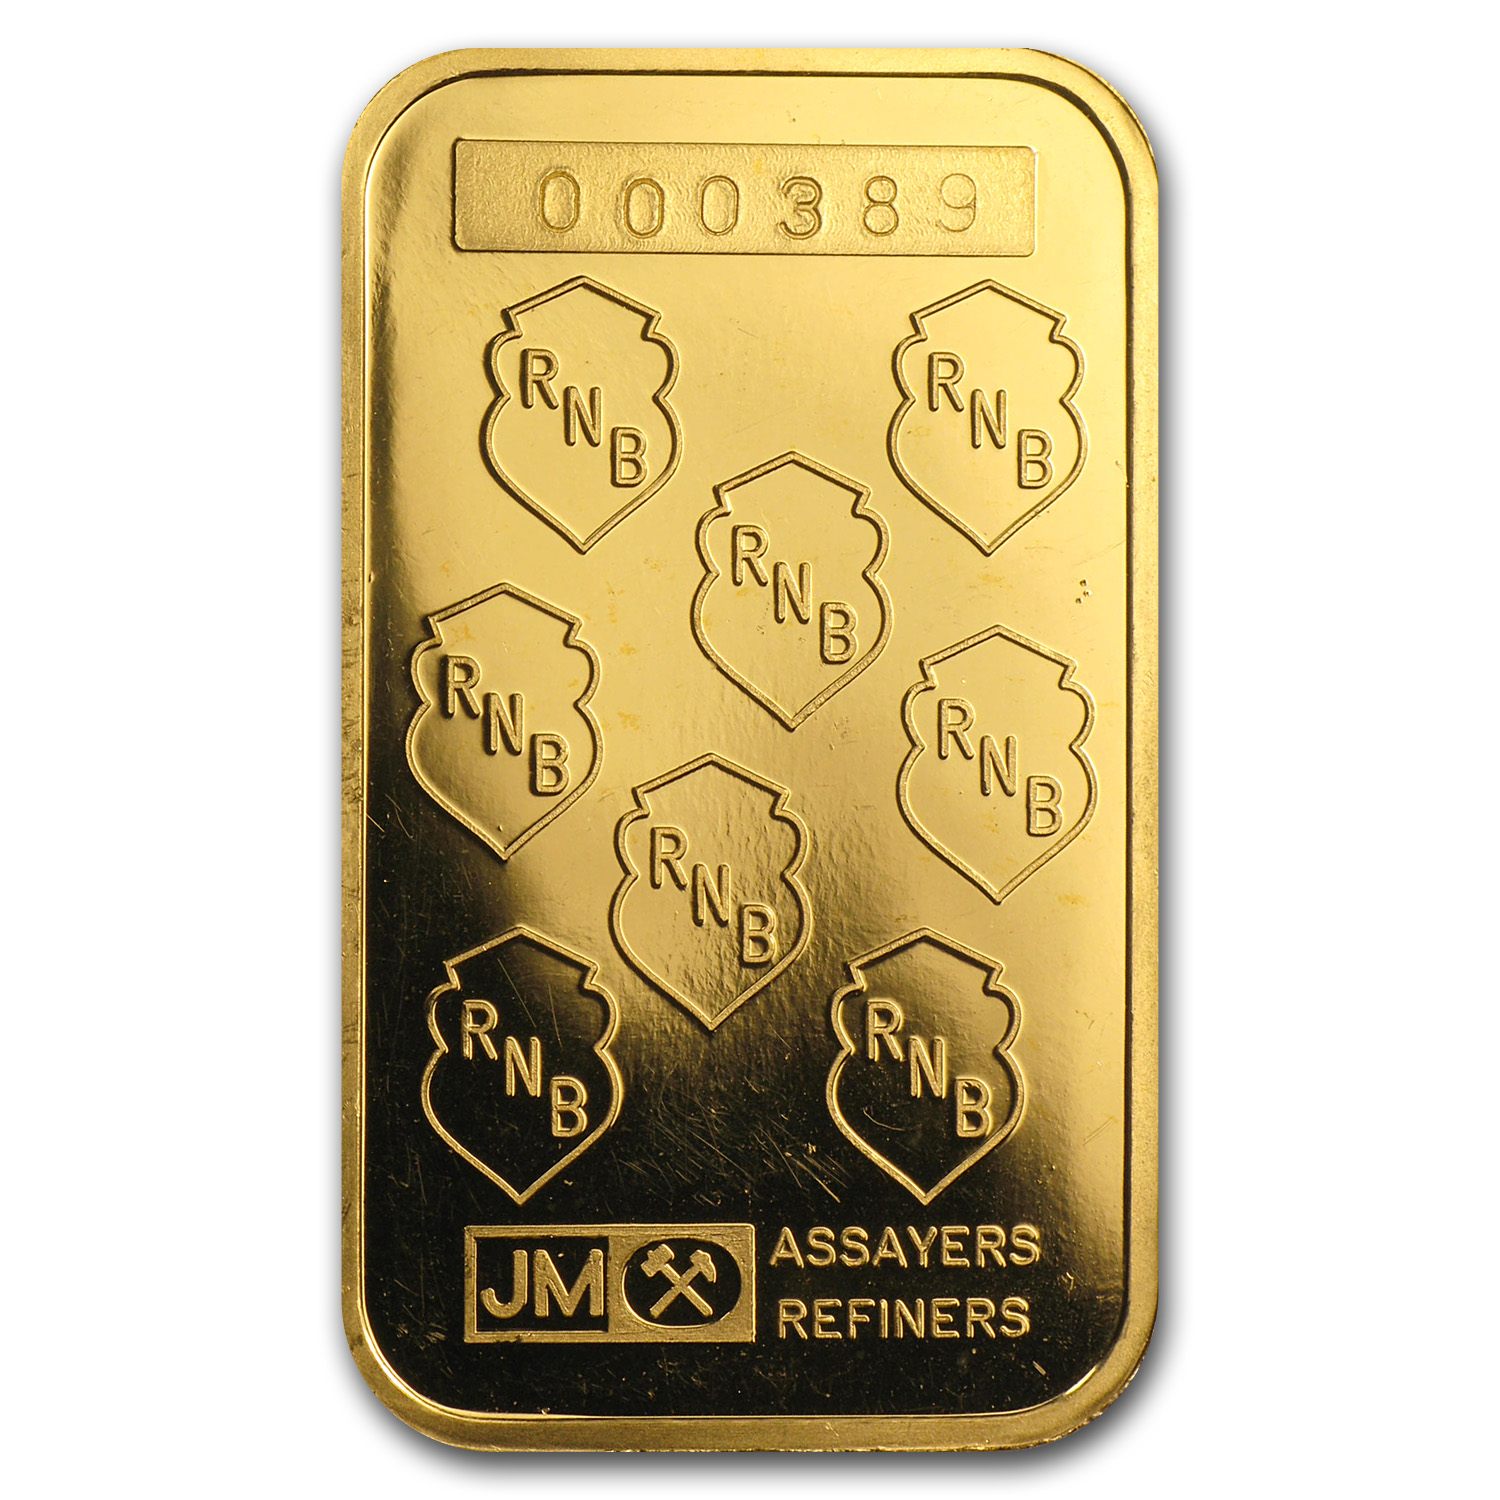 1/2 oz Gold Bars - Johnson Matthey (RNB)